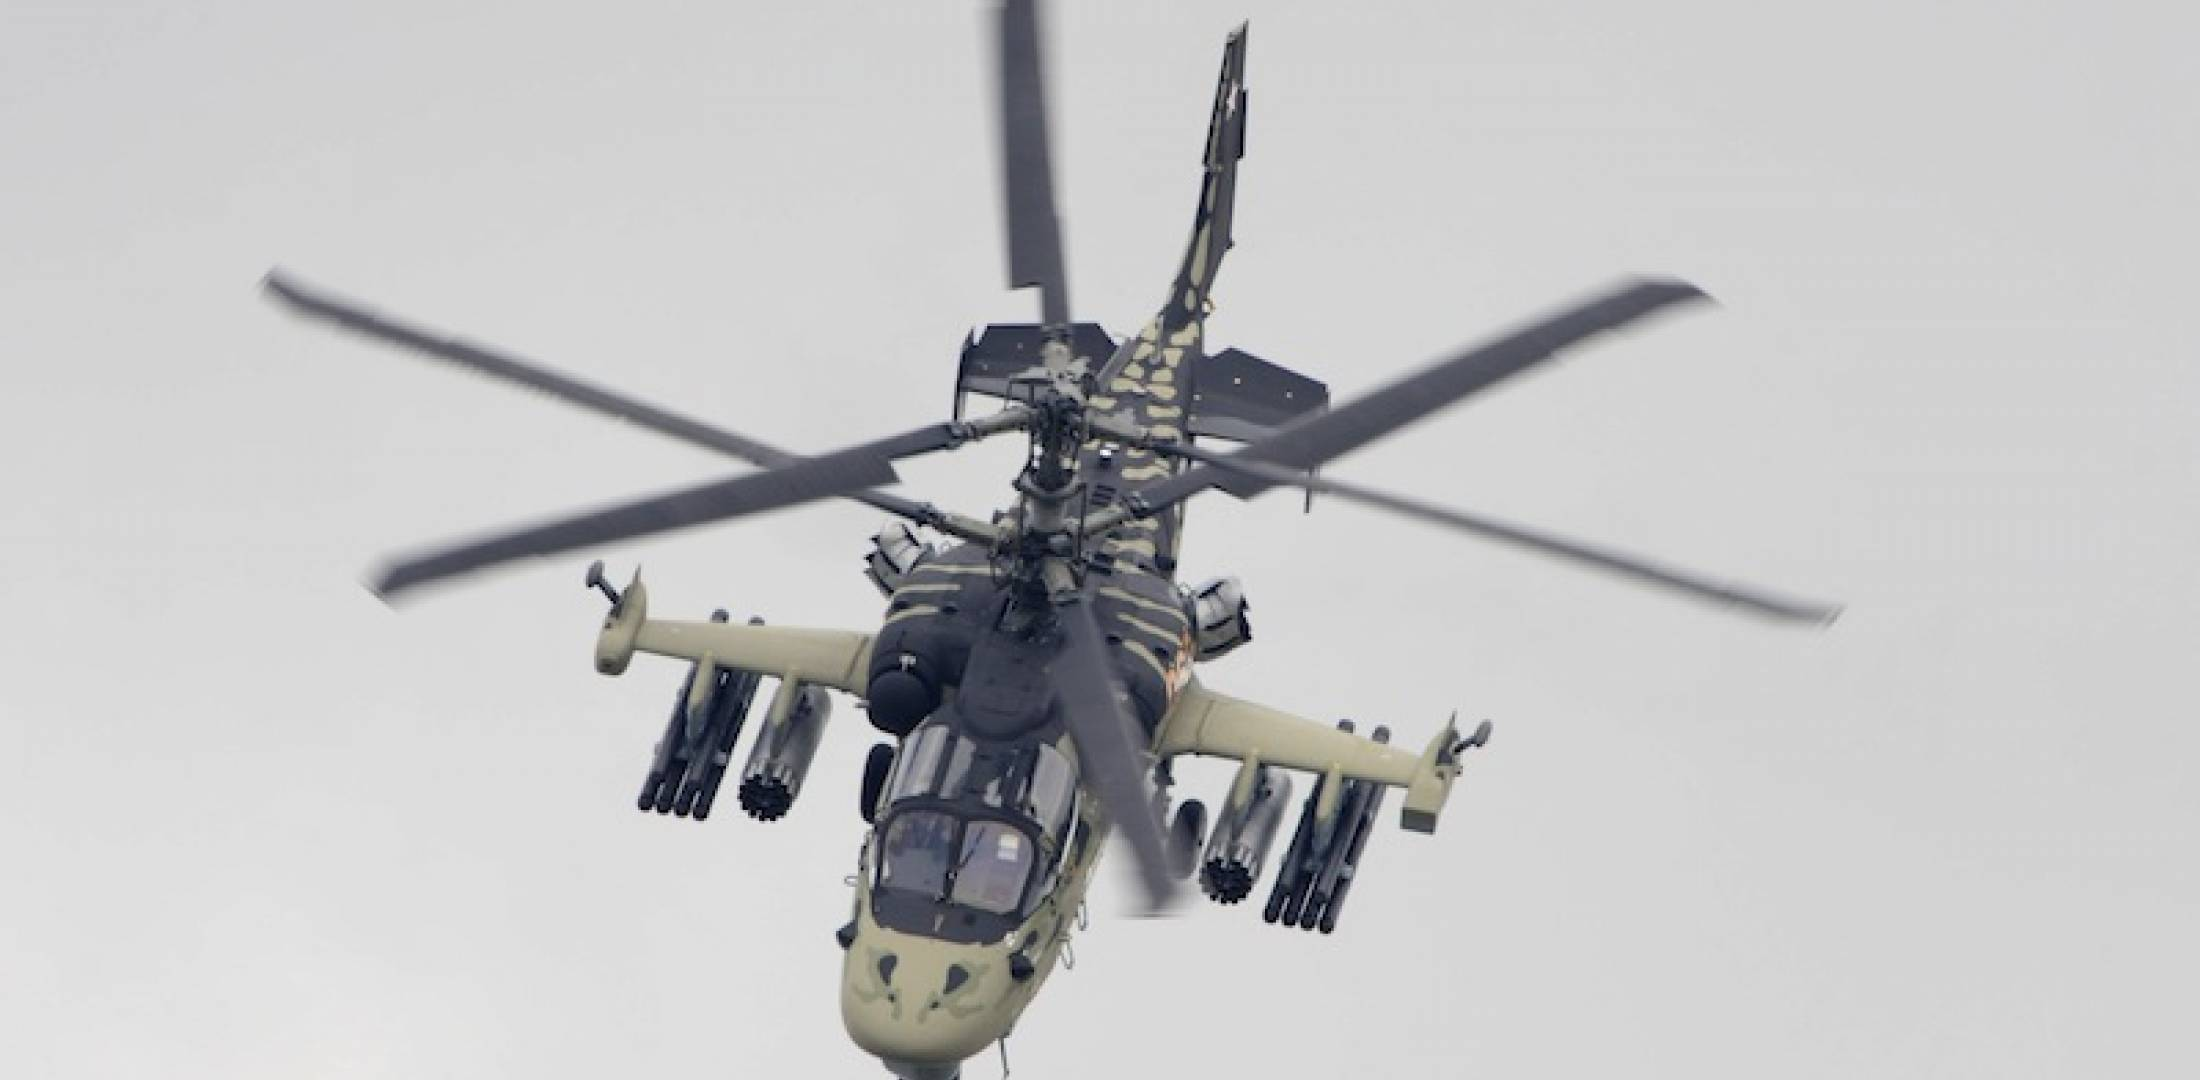 helicopter charter service with Kamov Working Naval Alligator on Lady Lola 12277 moreover 1532522 likewise I 8190334 Charter A Helicopter To Staples Center Los Angeles likewise Kamov Working Naval Alligator likewise Helikoptertyper Leie Turer Privat Firma.